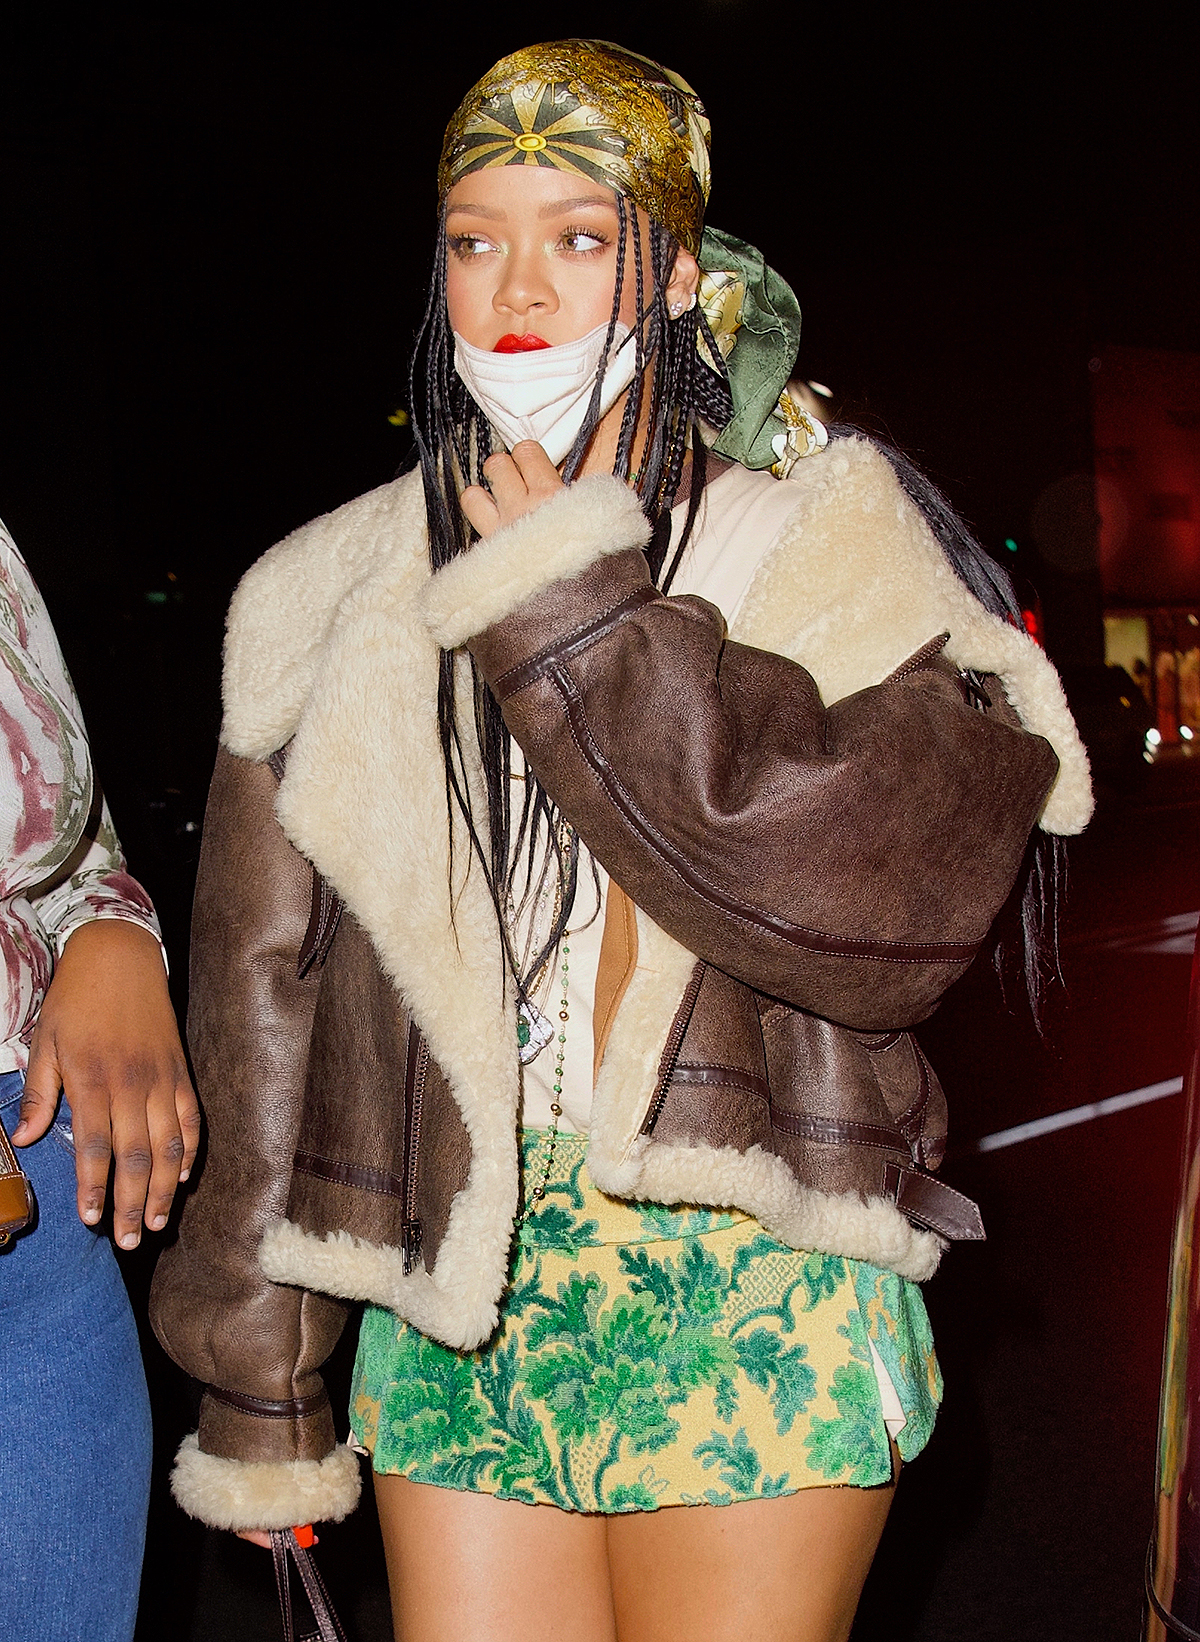 Rihanna Parties at The Nice Guy in Mini Skirt That Showcases Her Slender Legs